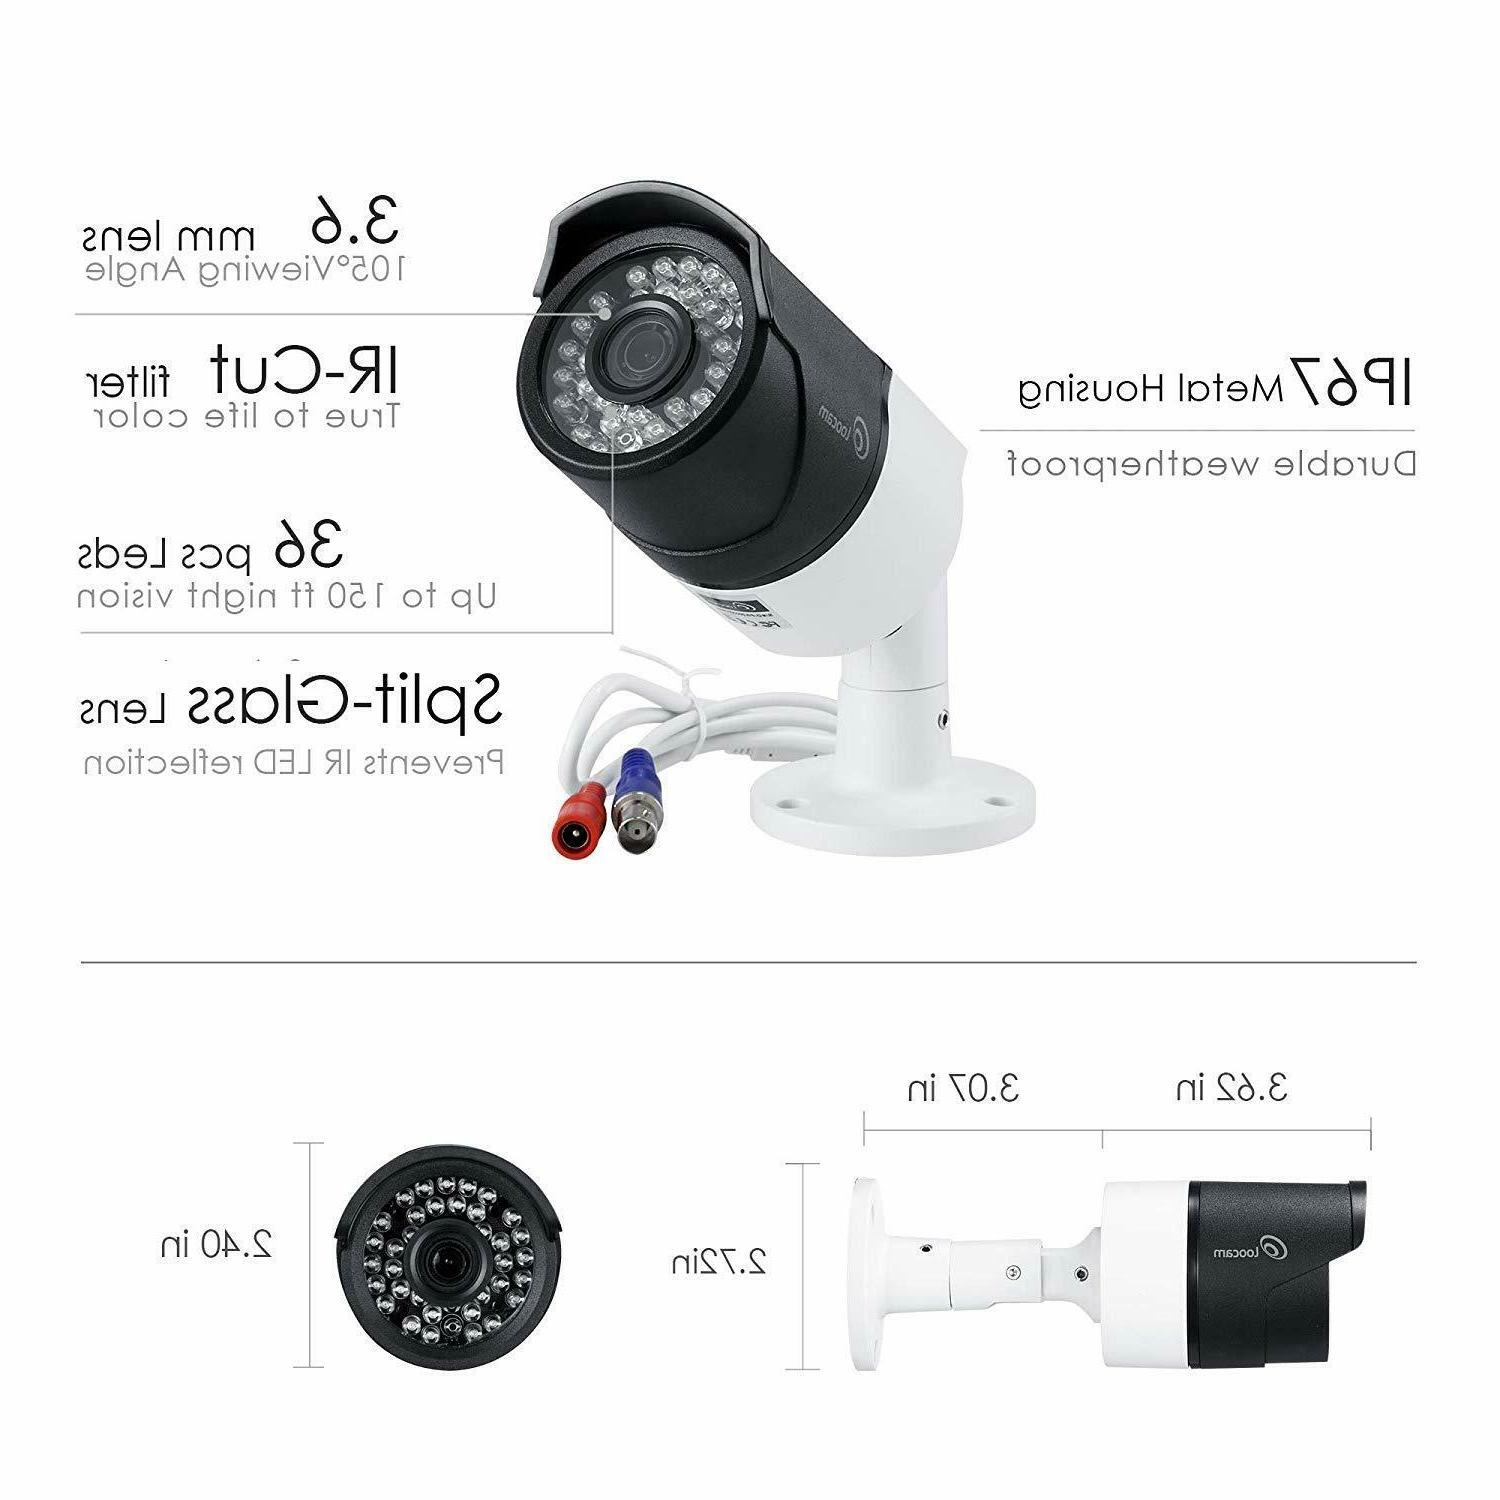 Loocam 5MP Surveillance Security Cameras 2T DVR camera